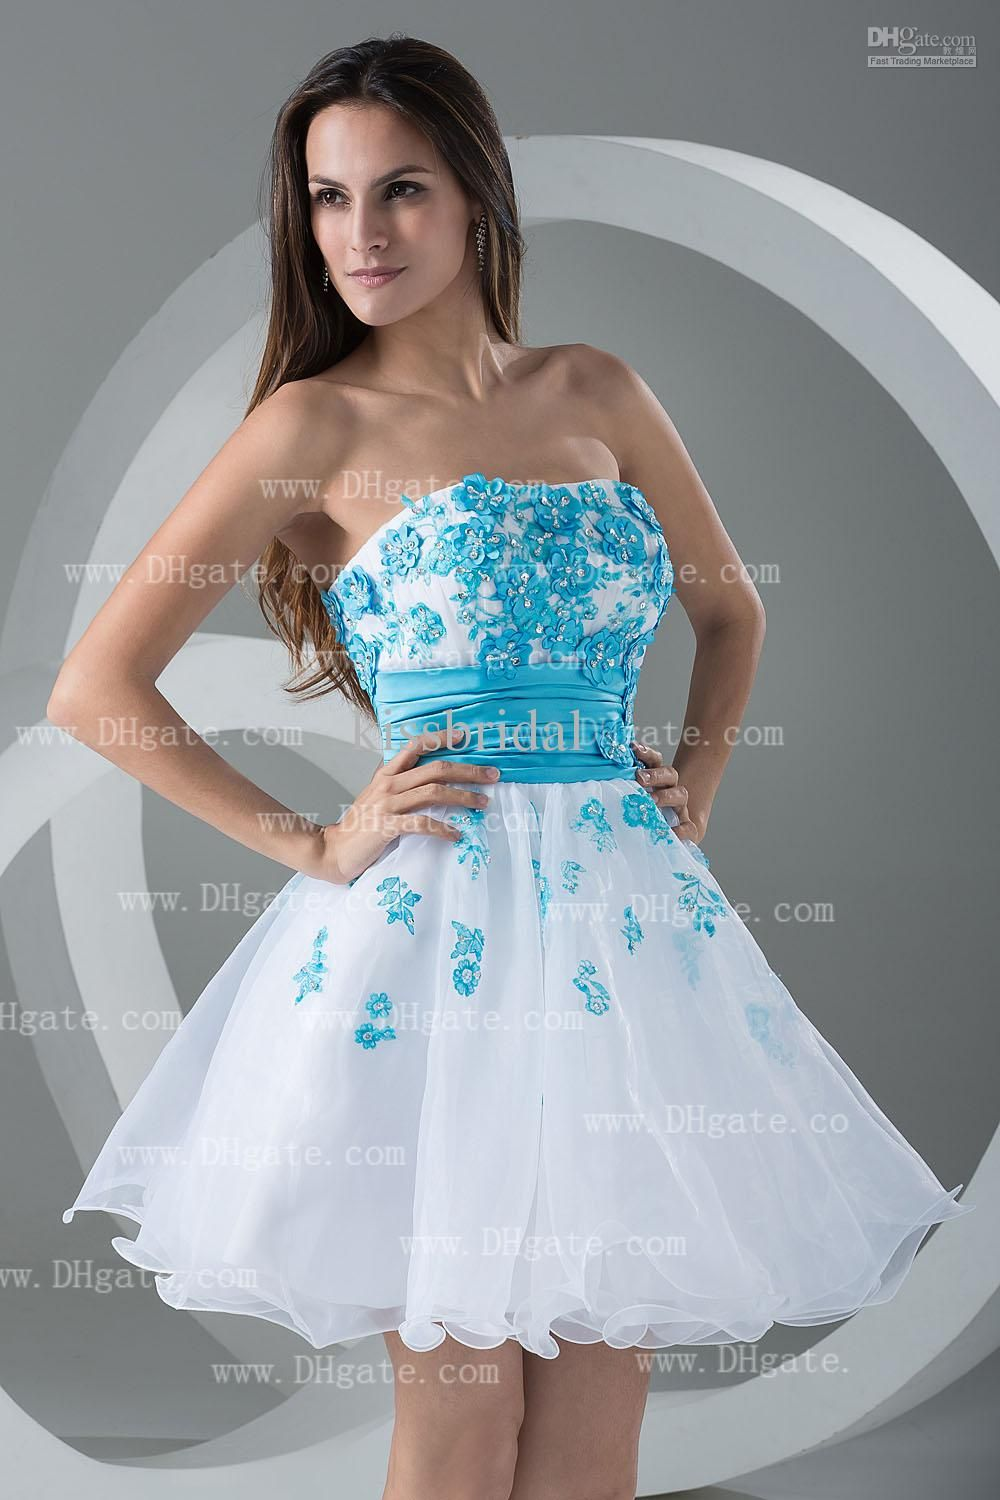 Buy newest style for wedding dresses bridesmaid dresses and